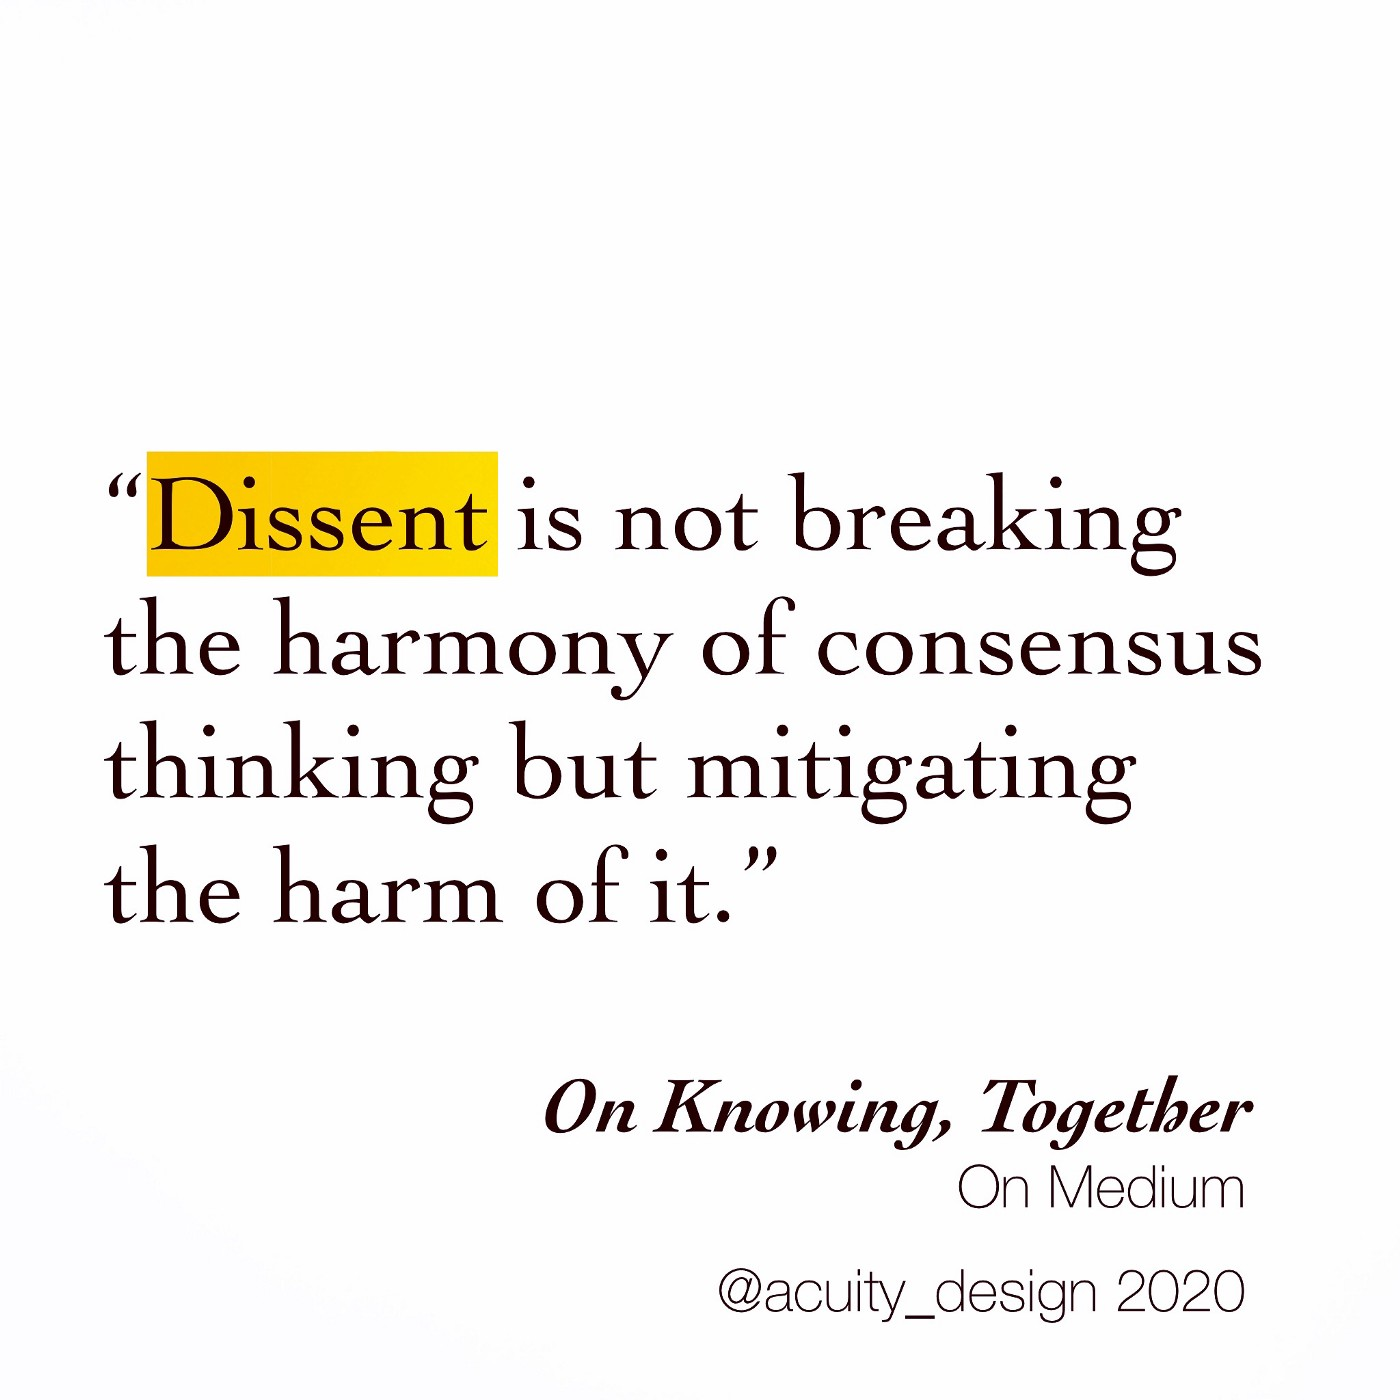 Text quote: Dissent is not brealing the harmony of consensus but mitigating the harm of it